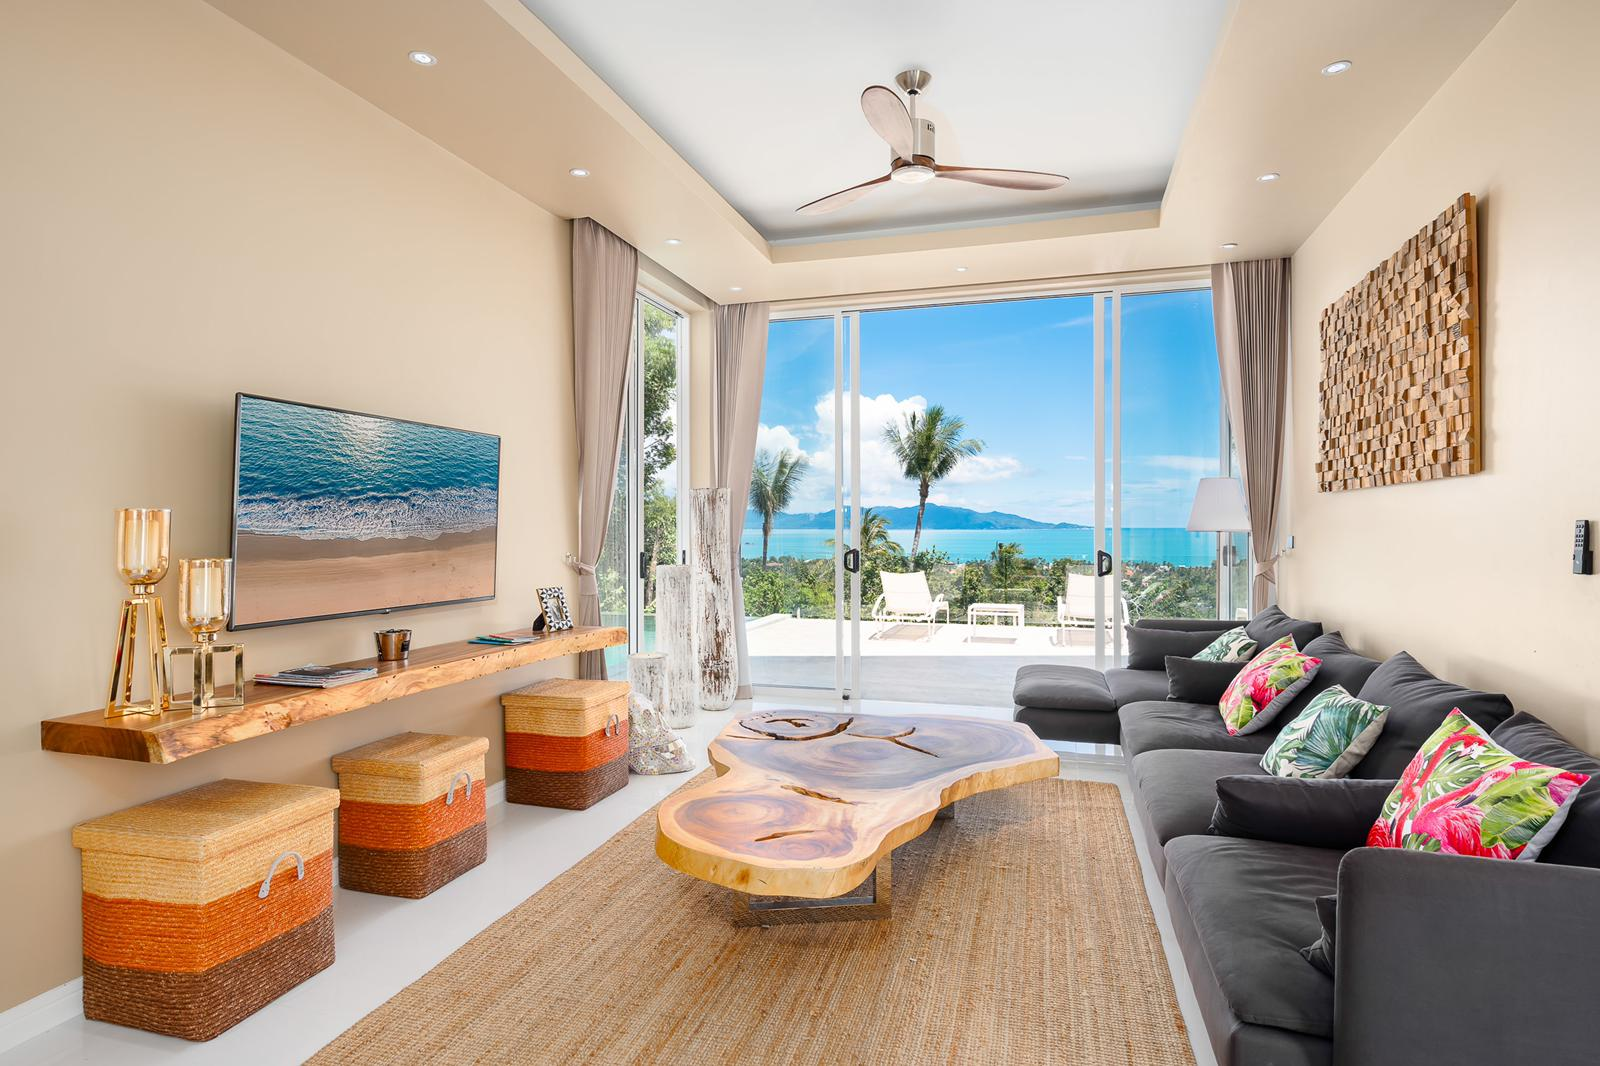 Stunning 2-bedroom property with sea view